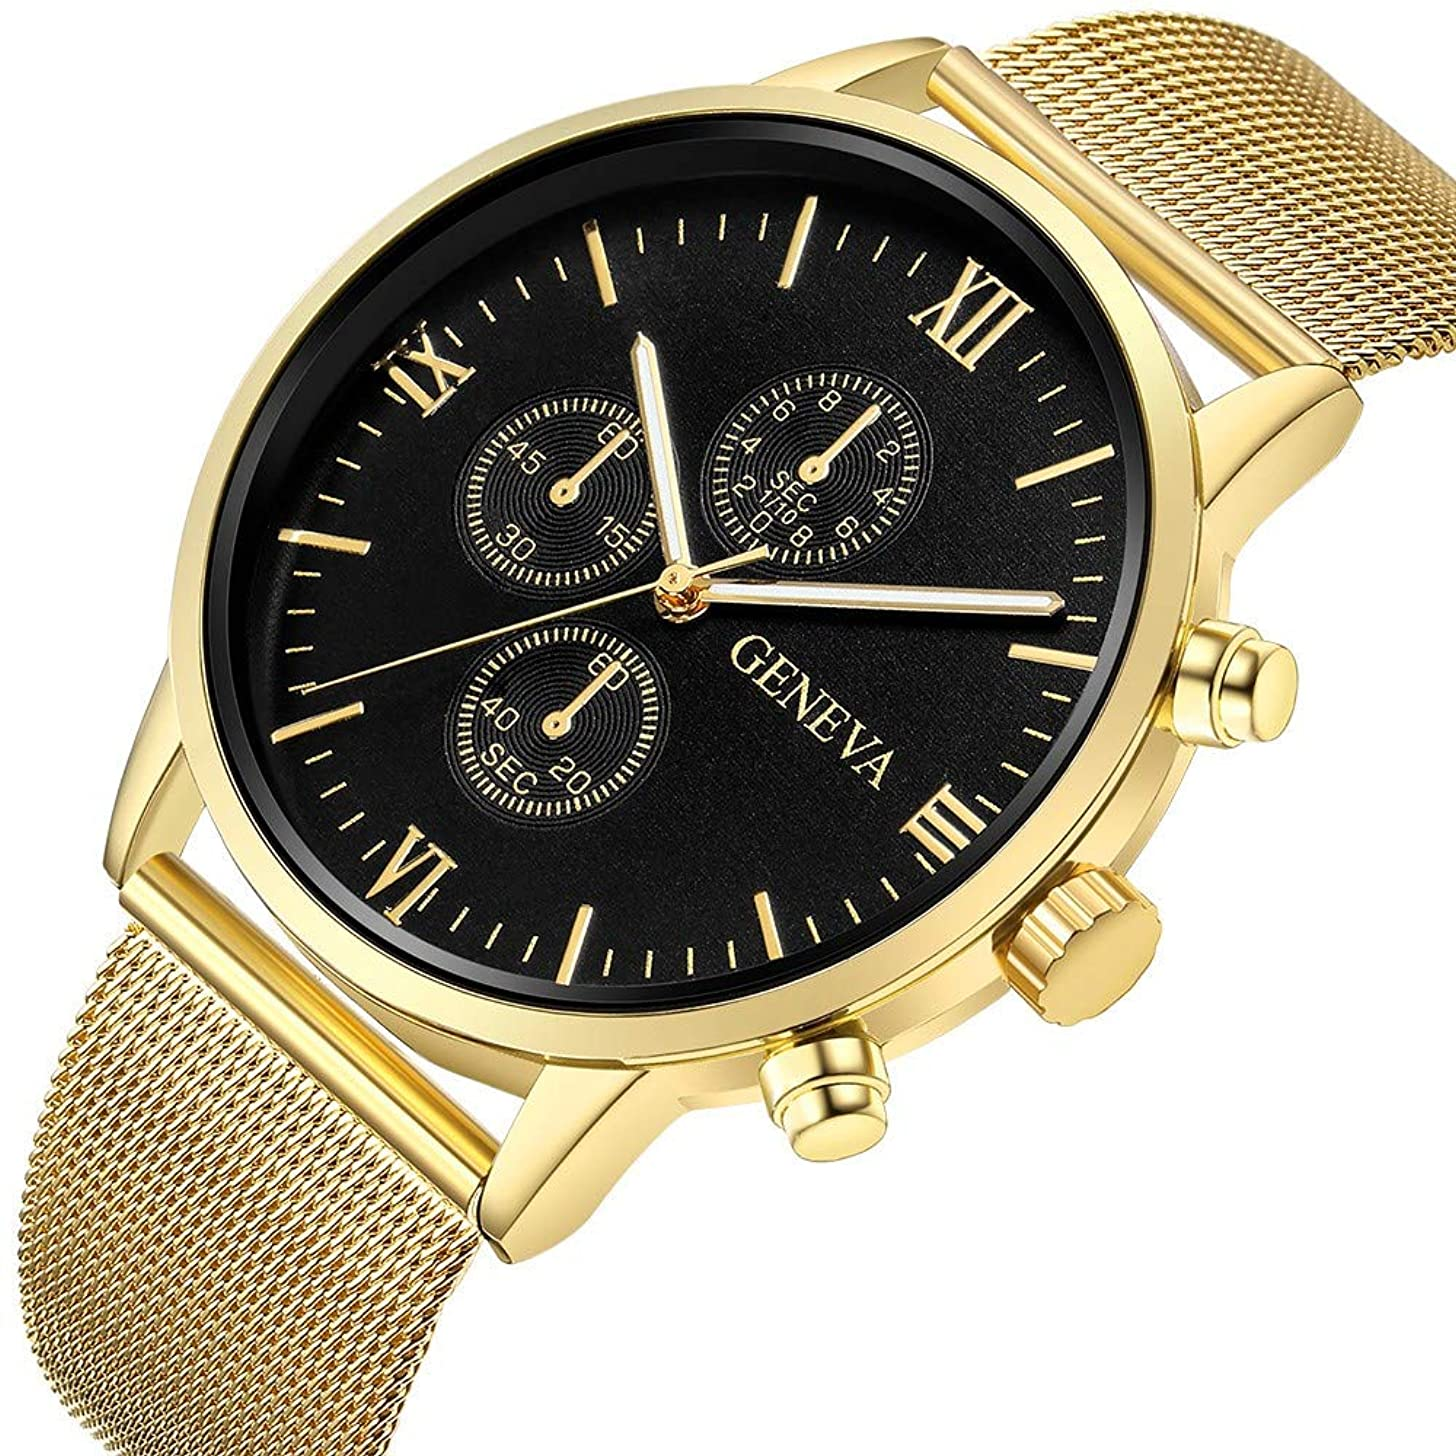 Watches for Men On Sale Clearance,Men's Watch Fashion Luxury Waterproof Sports Analogue Casual Quartz Chronograph Watch,Stainless Steel Black Watch Gift for Boys